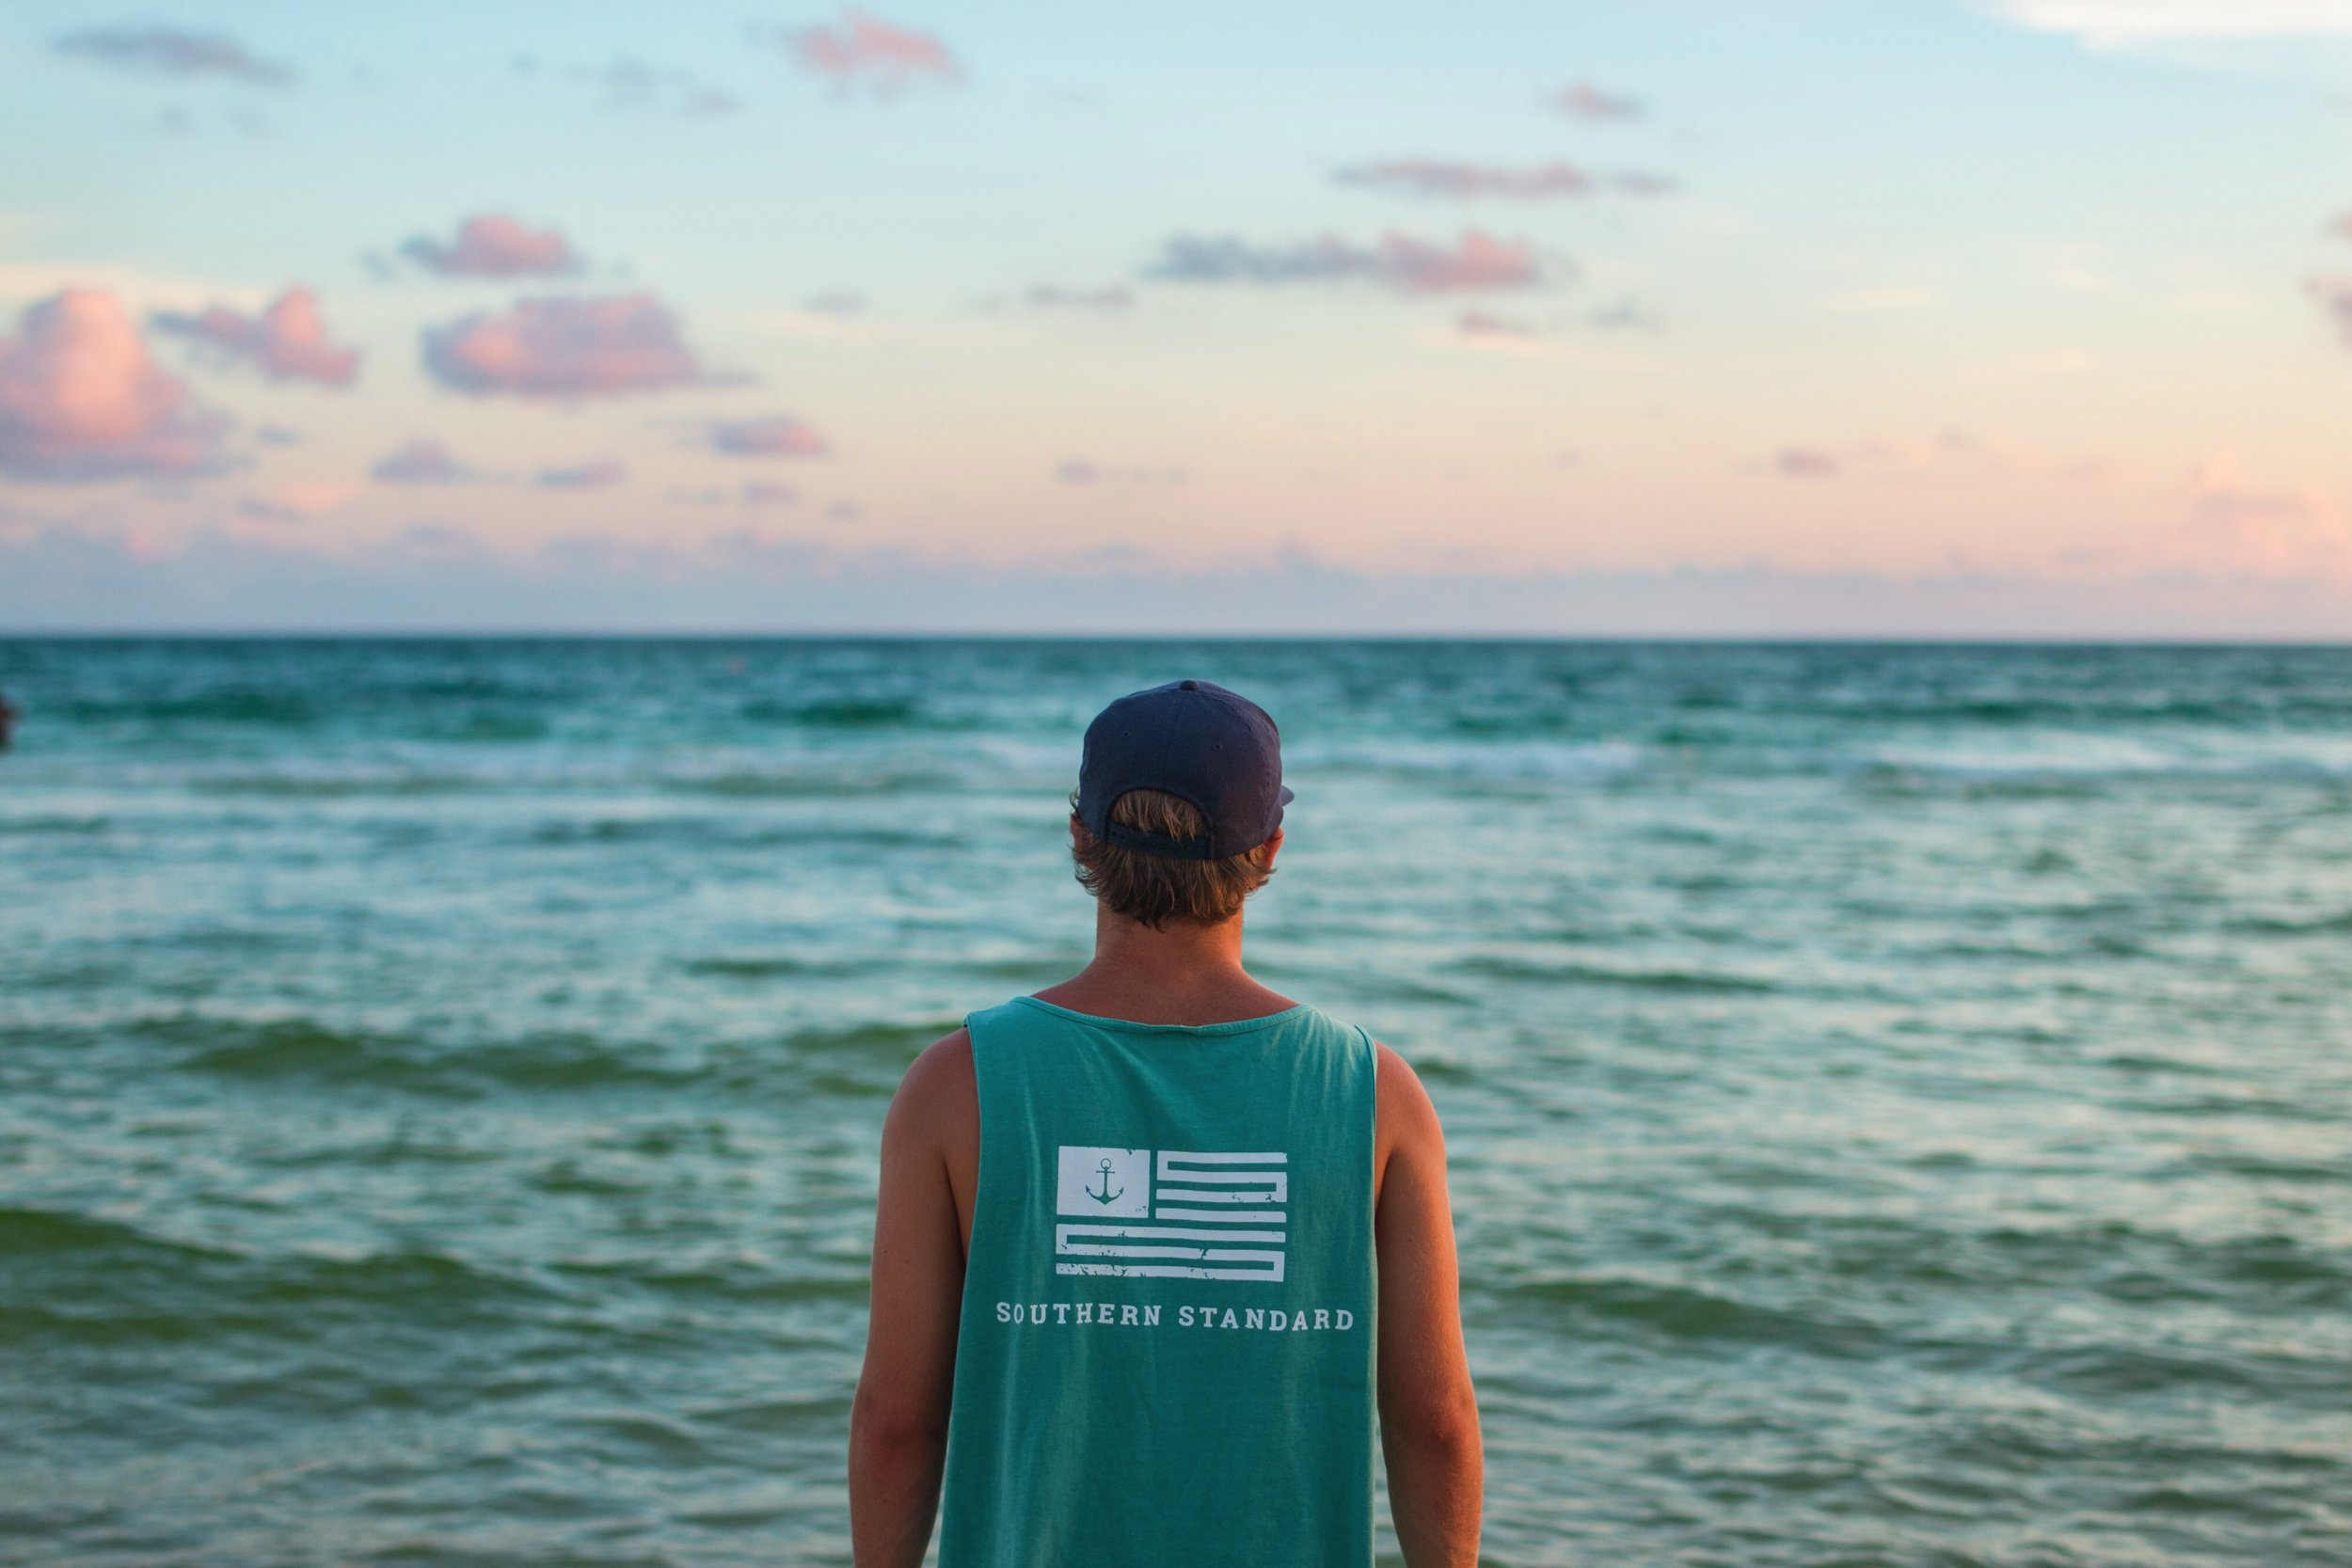 The American - Seafoam / White Tank Top